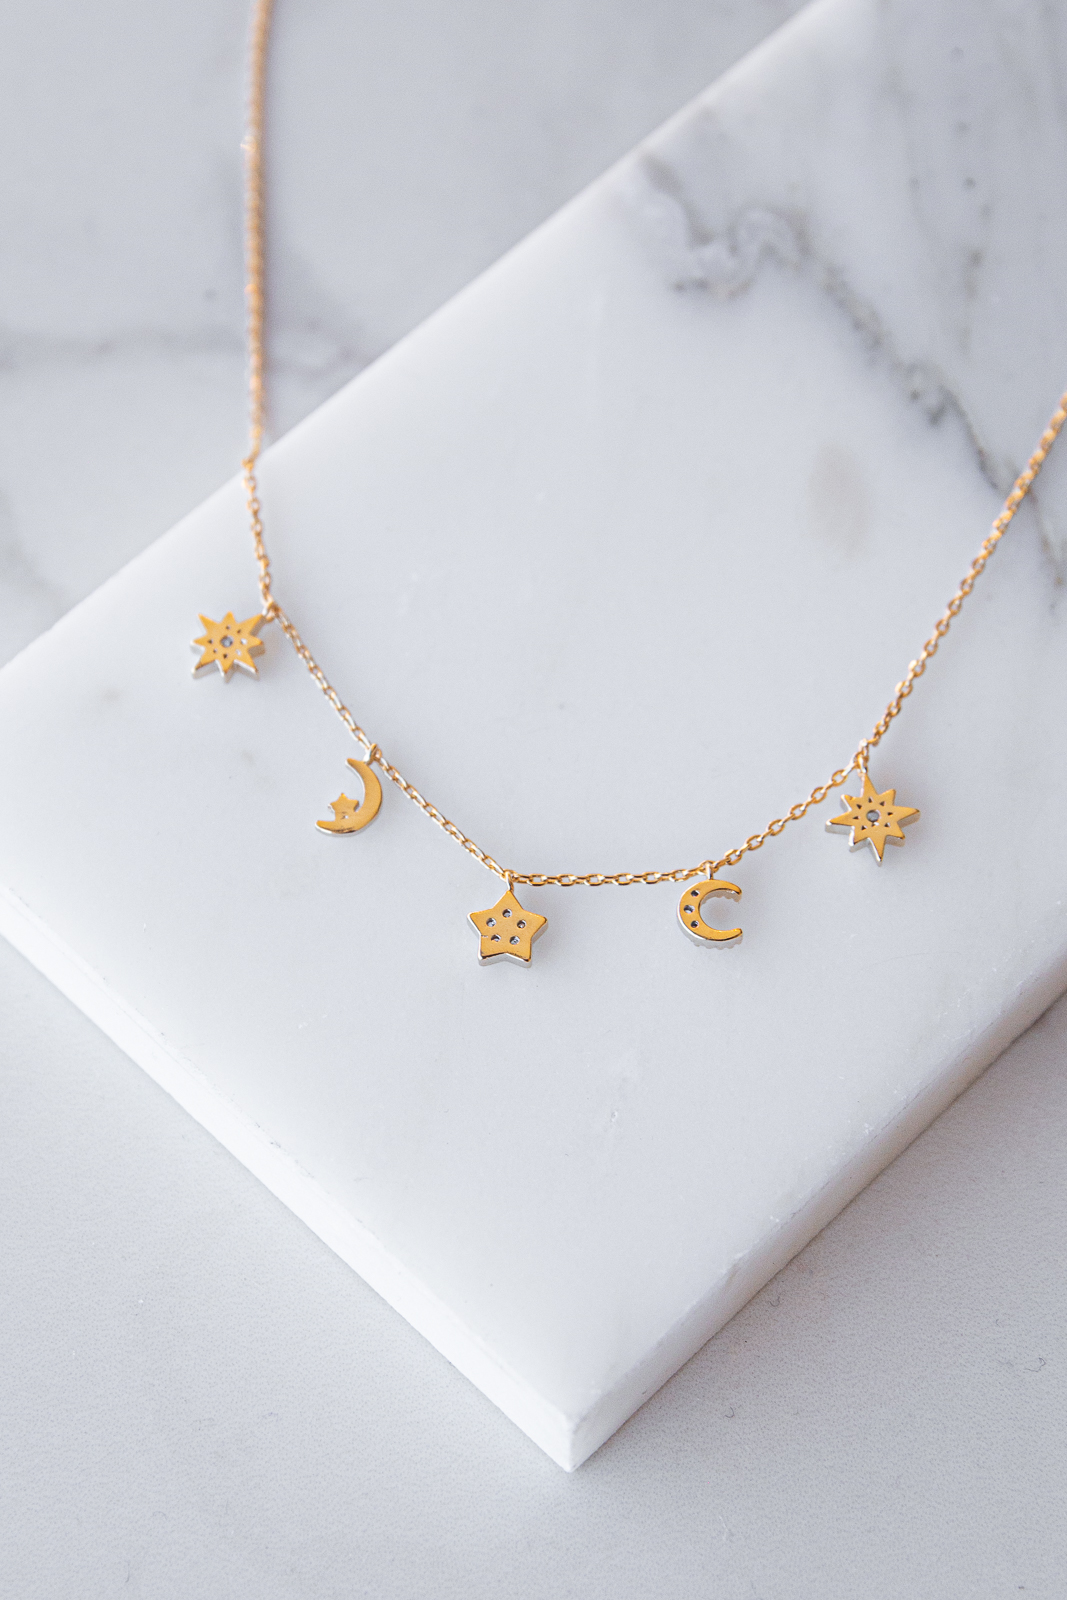 Gold Tiny Moon and Stars Charm Necklace with Dainty Chain